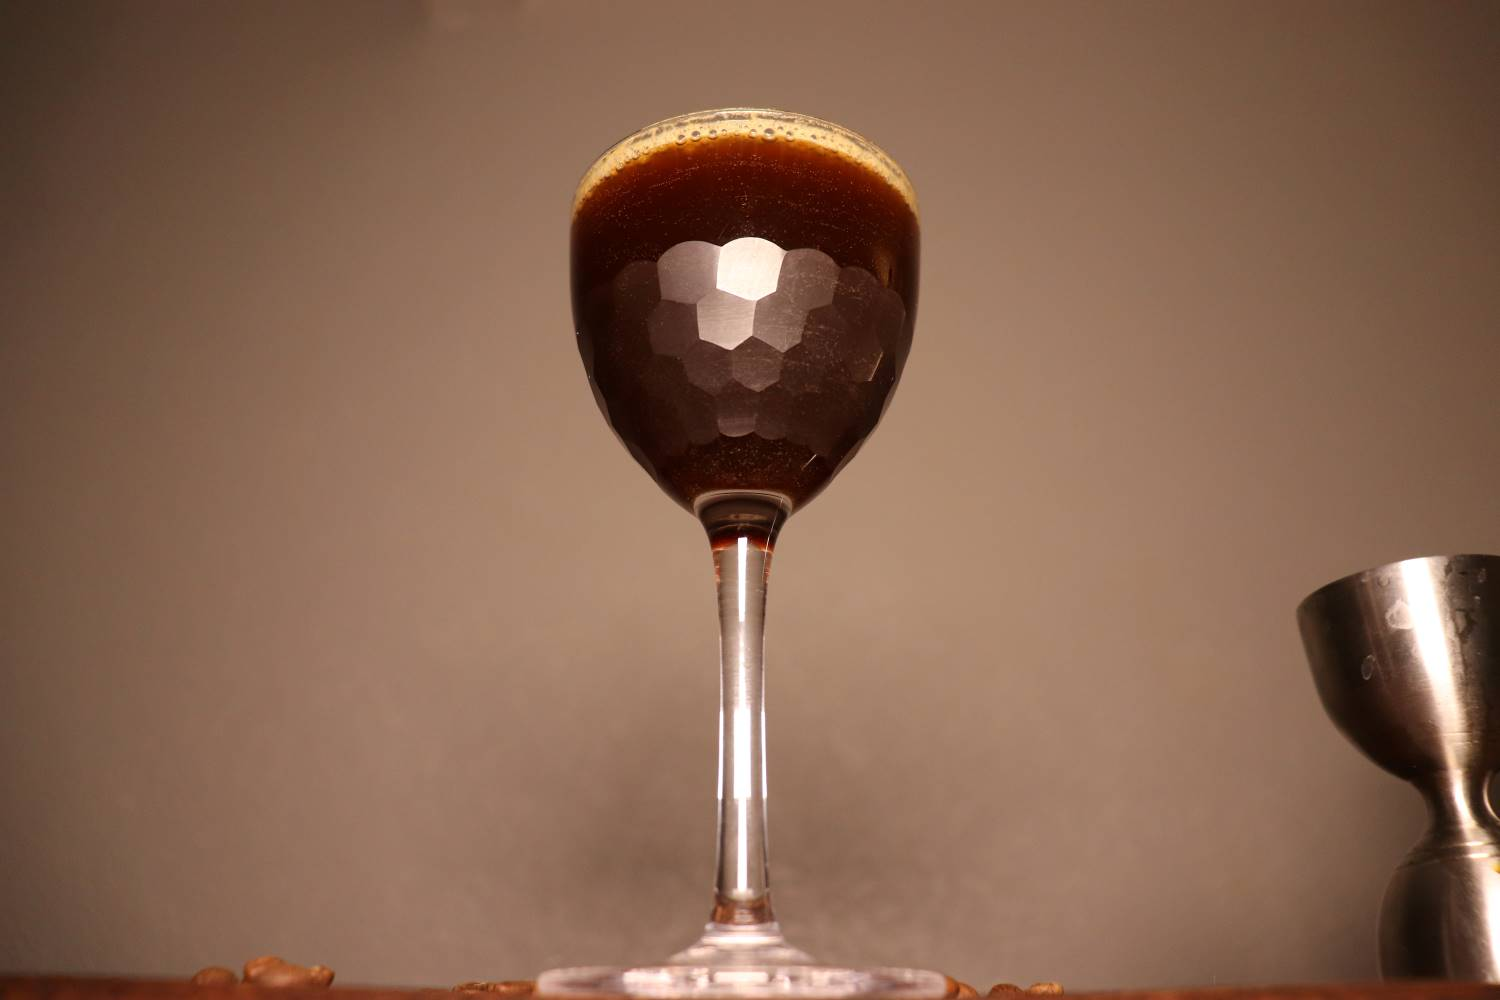 Espresso Martini in an Amehla Co. Honeycomb Nick & Nora cocktail glass